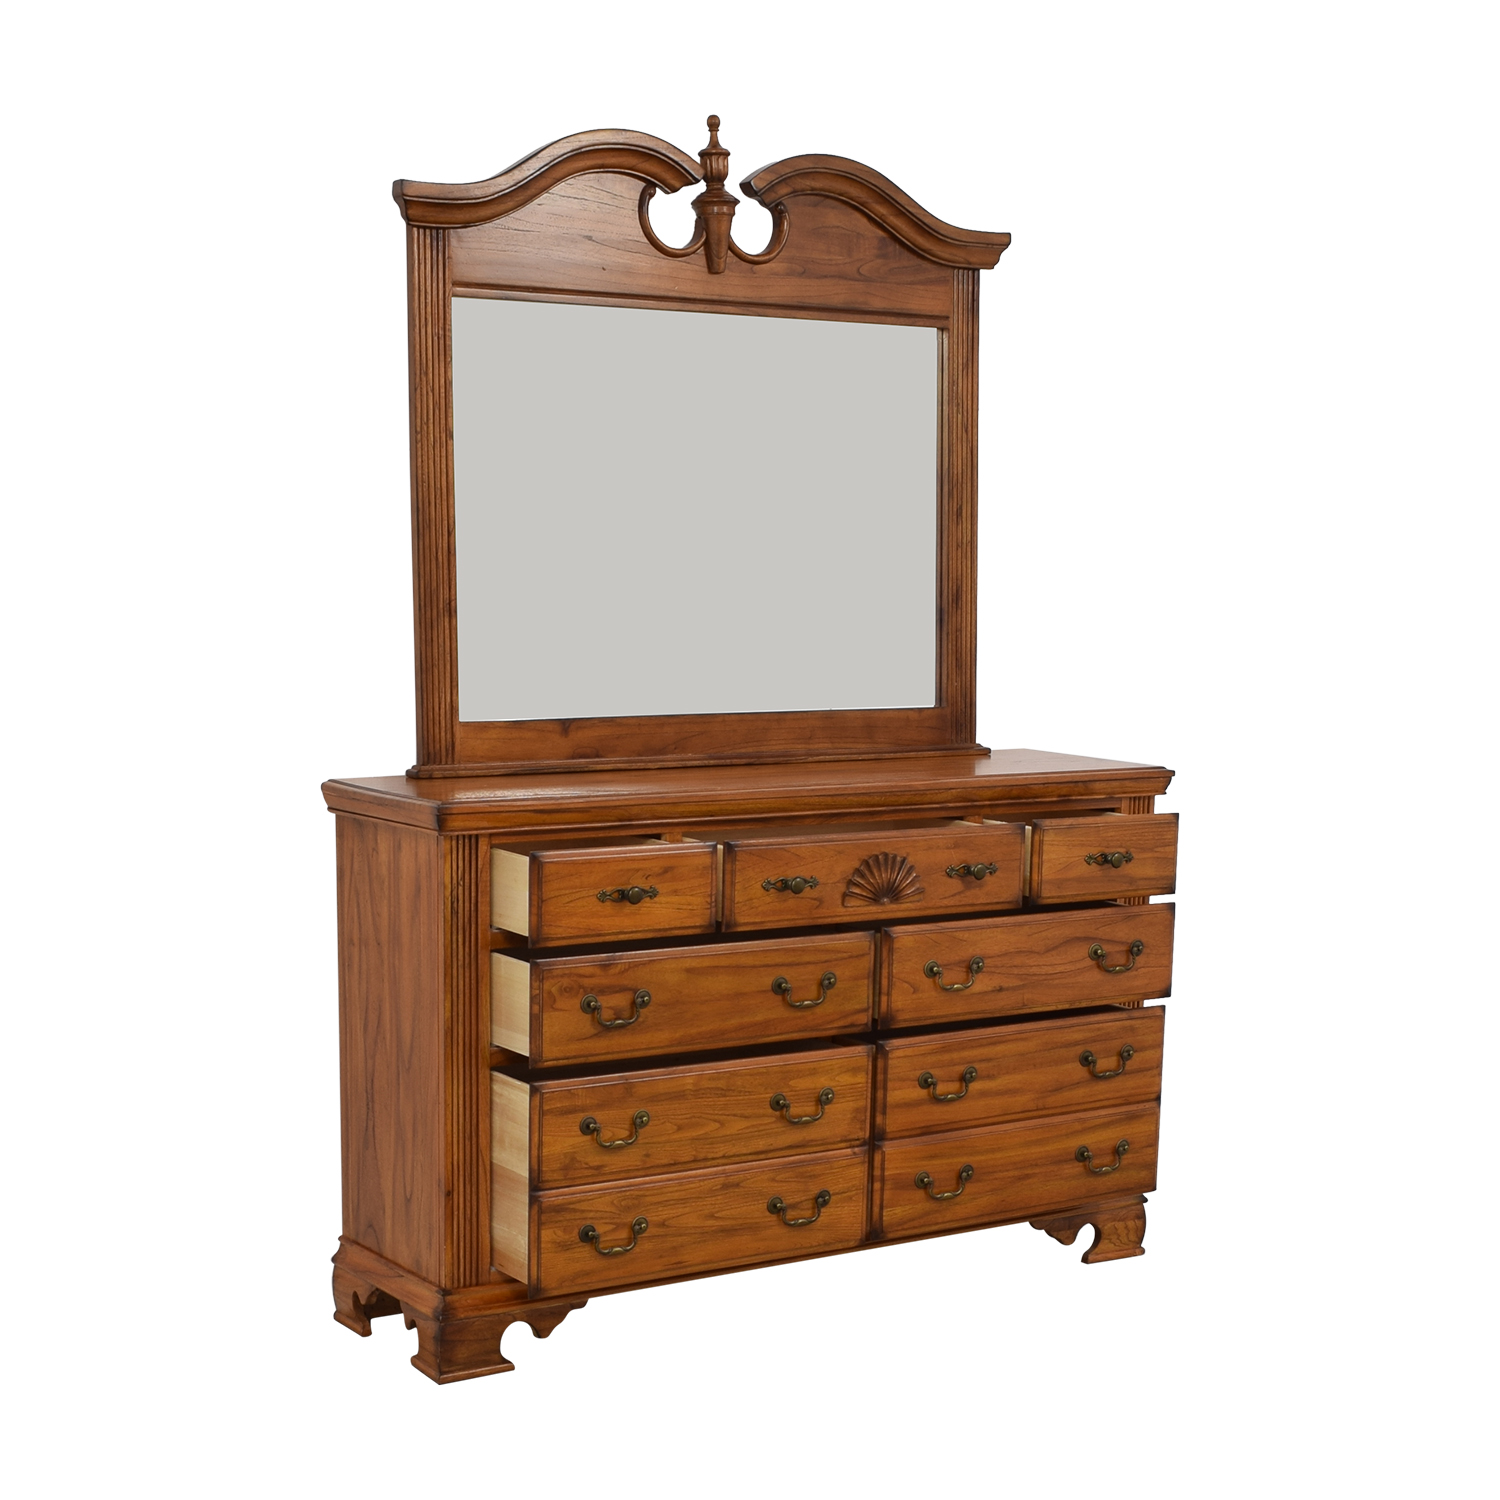 Millenia USA Millenia USA Seven Drawer Dresser with Mirror nyc